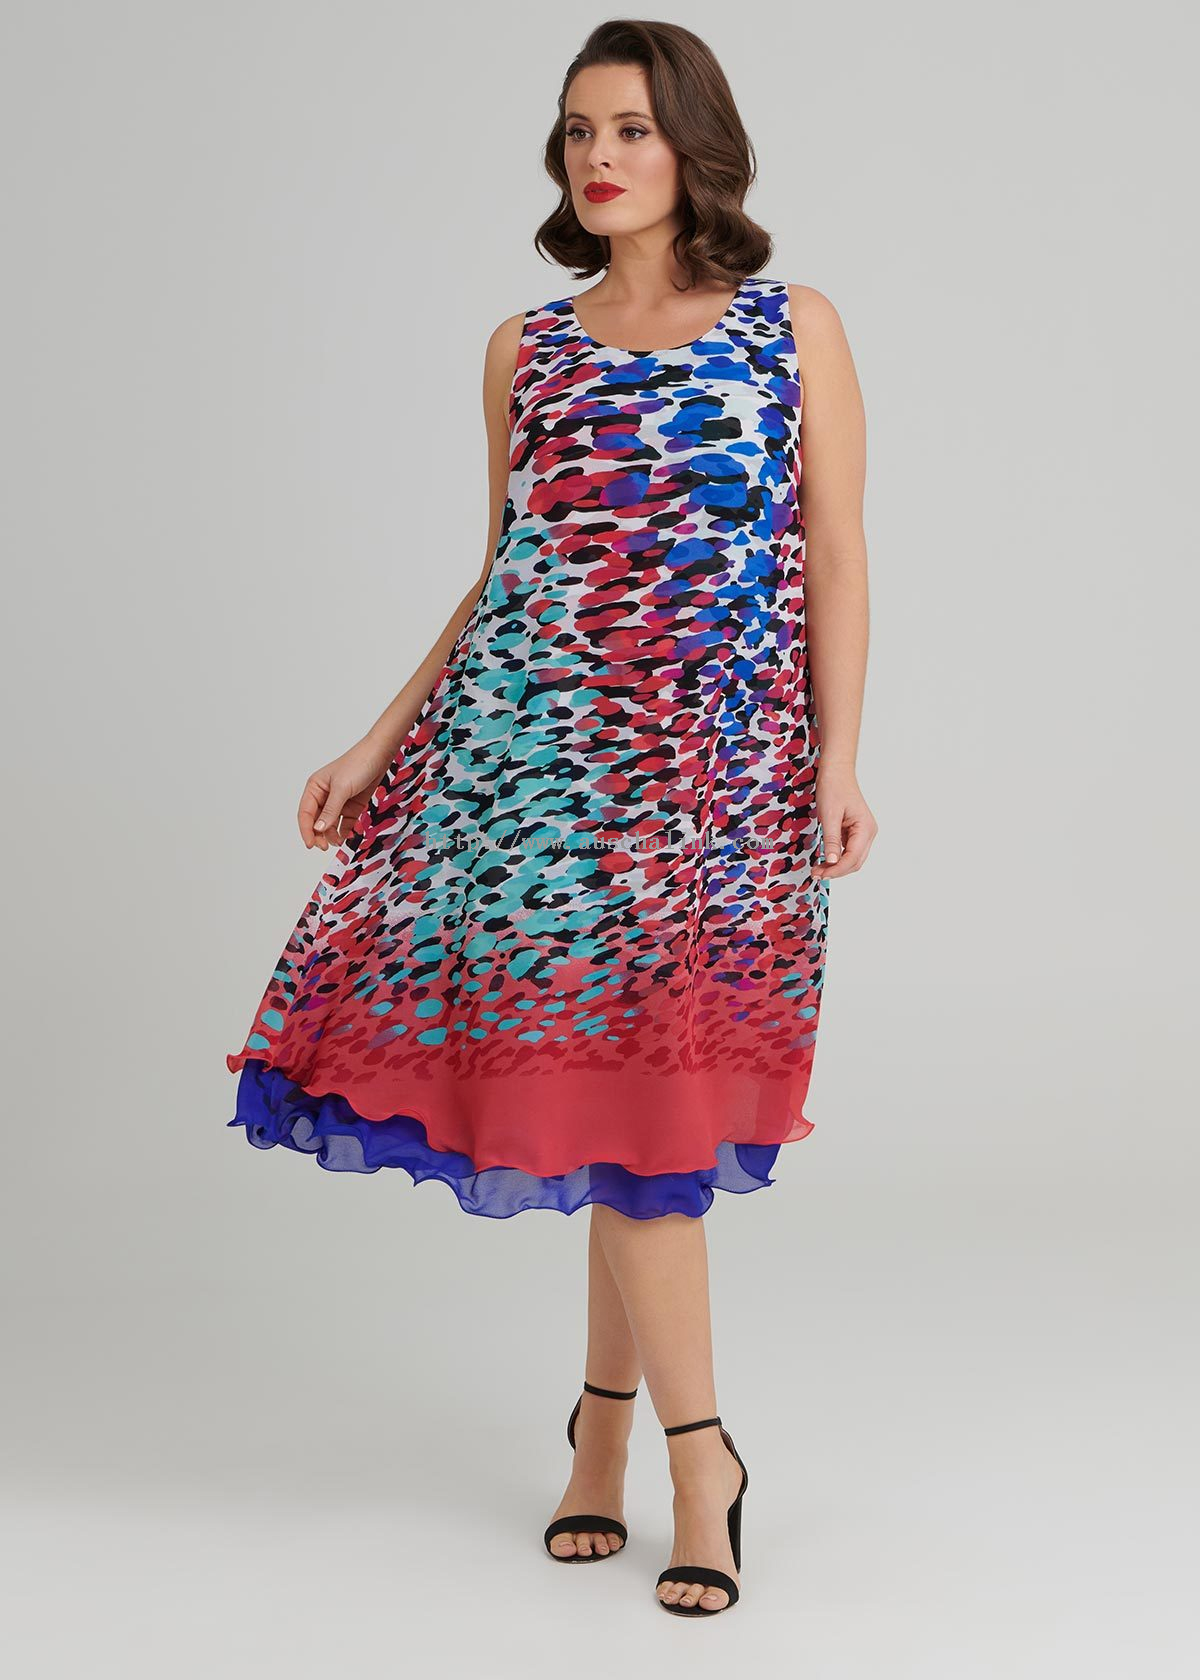 Monet Cocktail Dress